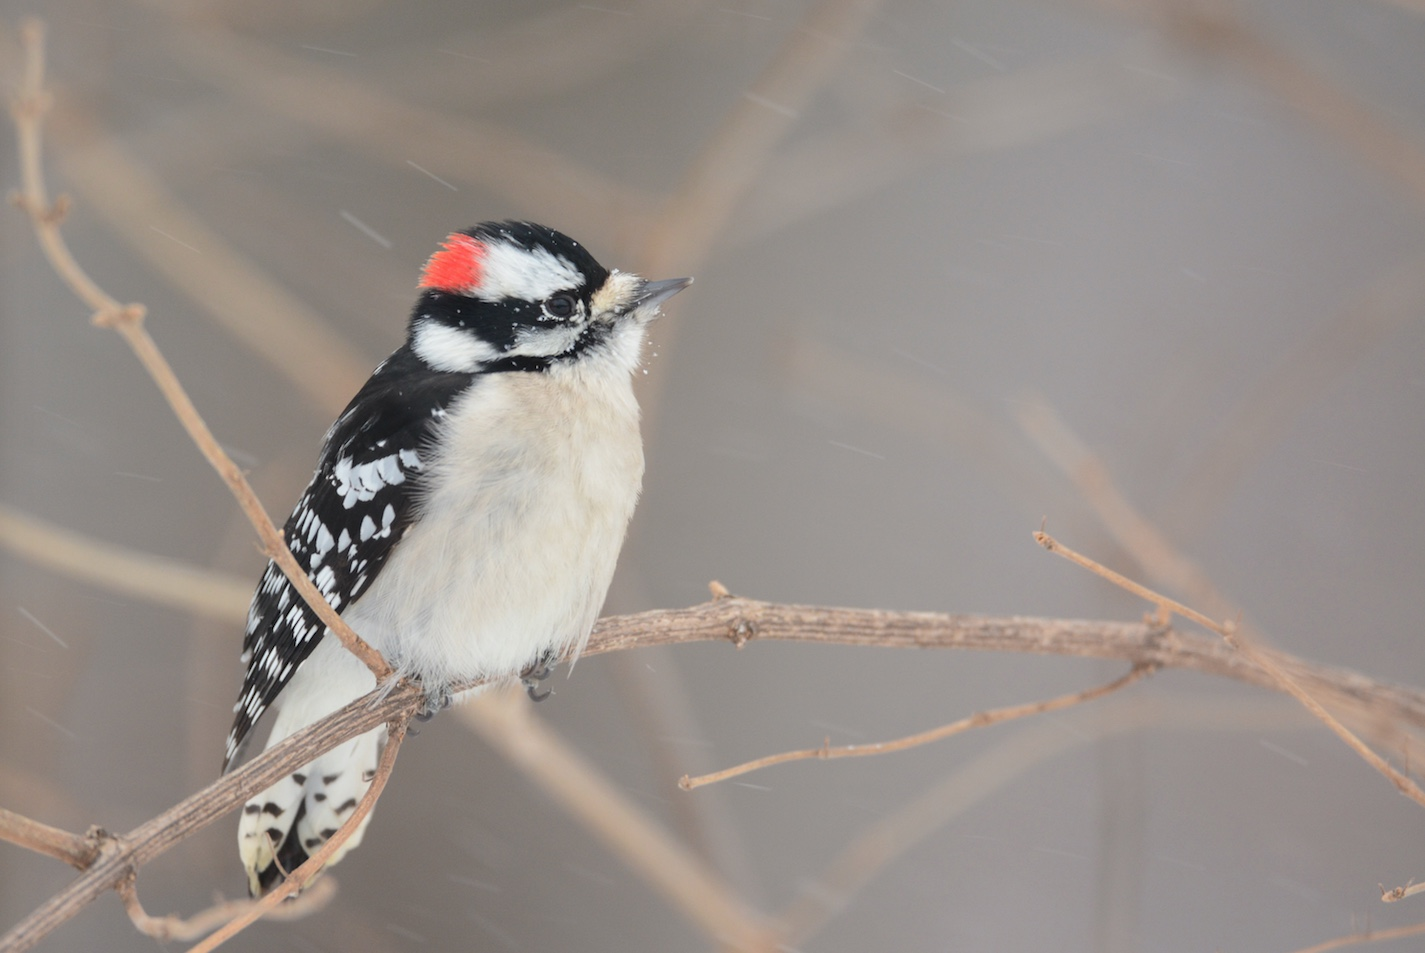 The red patch of feathers on the back of the head identifies this as a male Downy woodpecker.